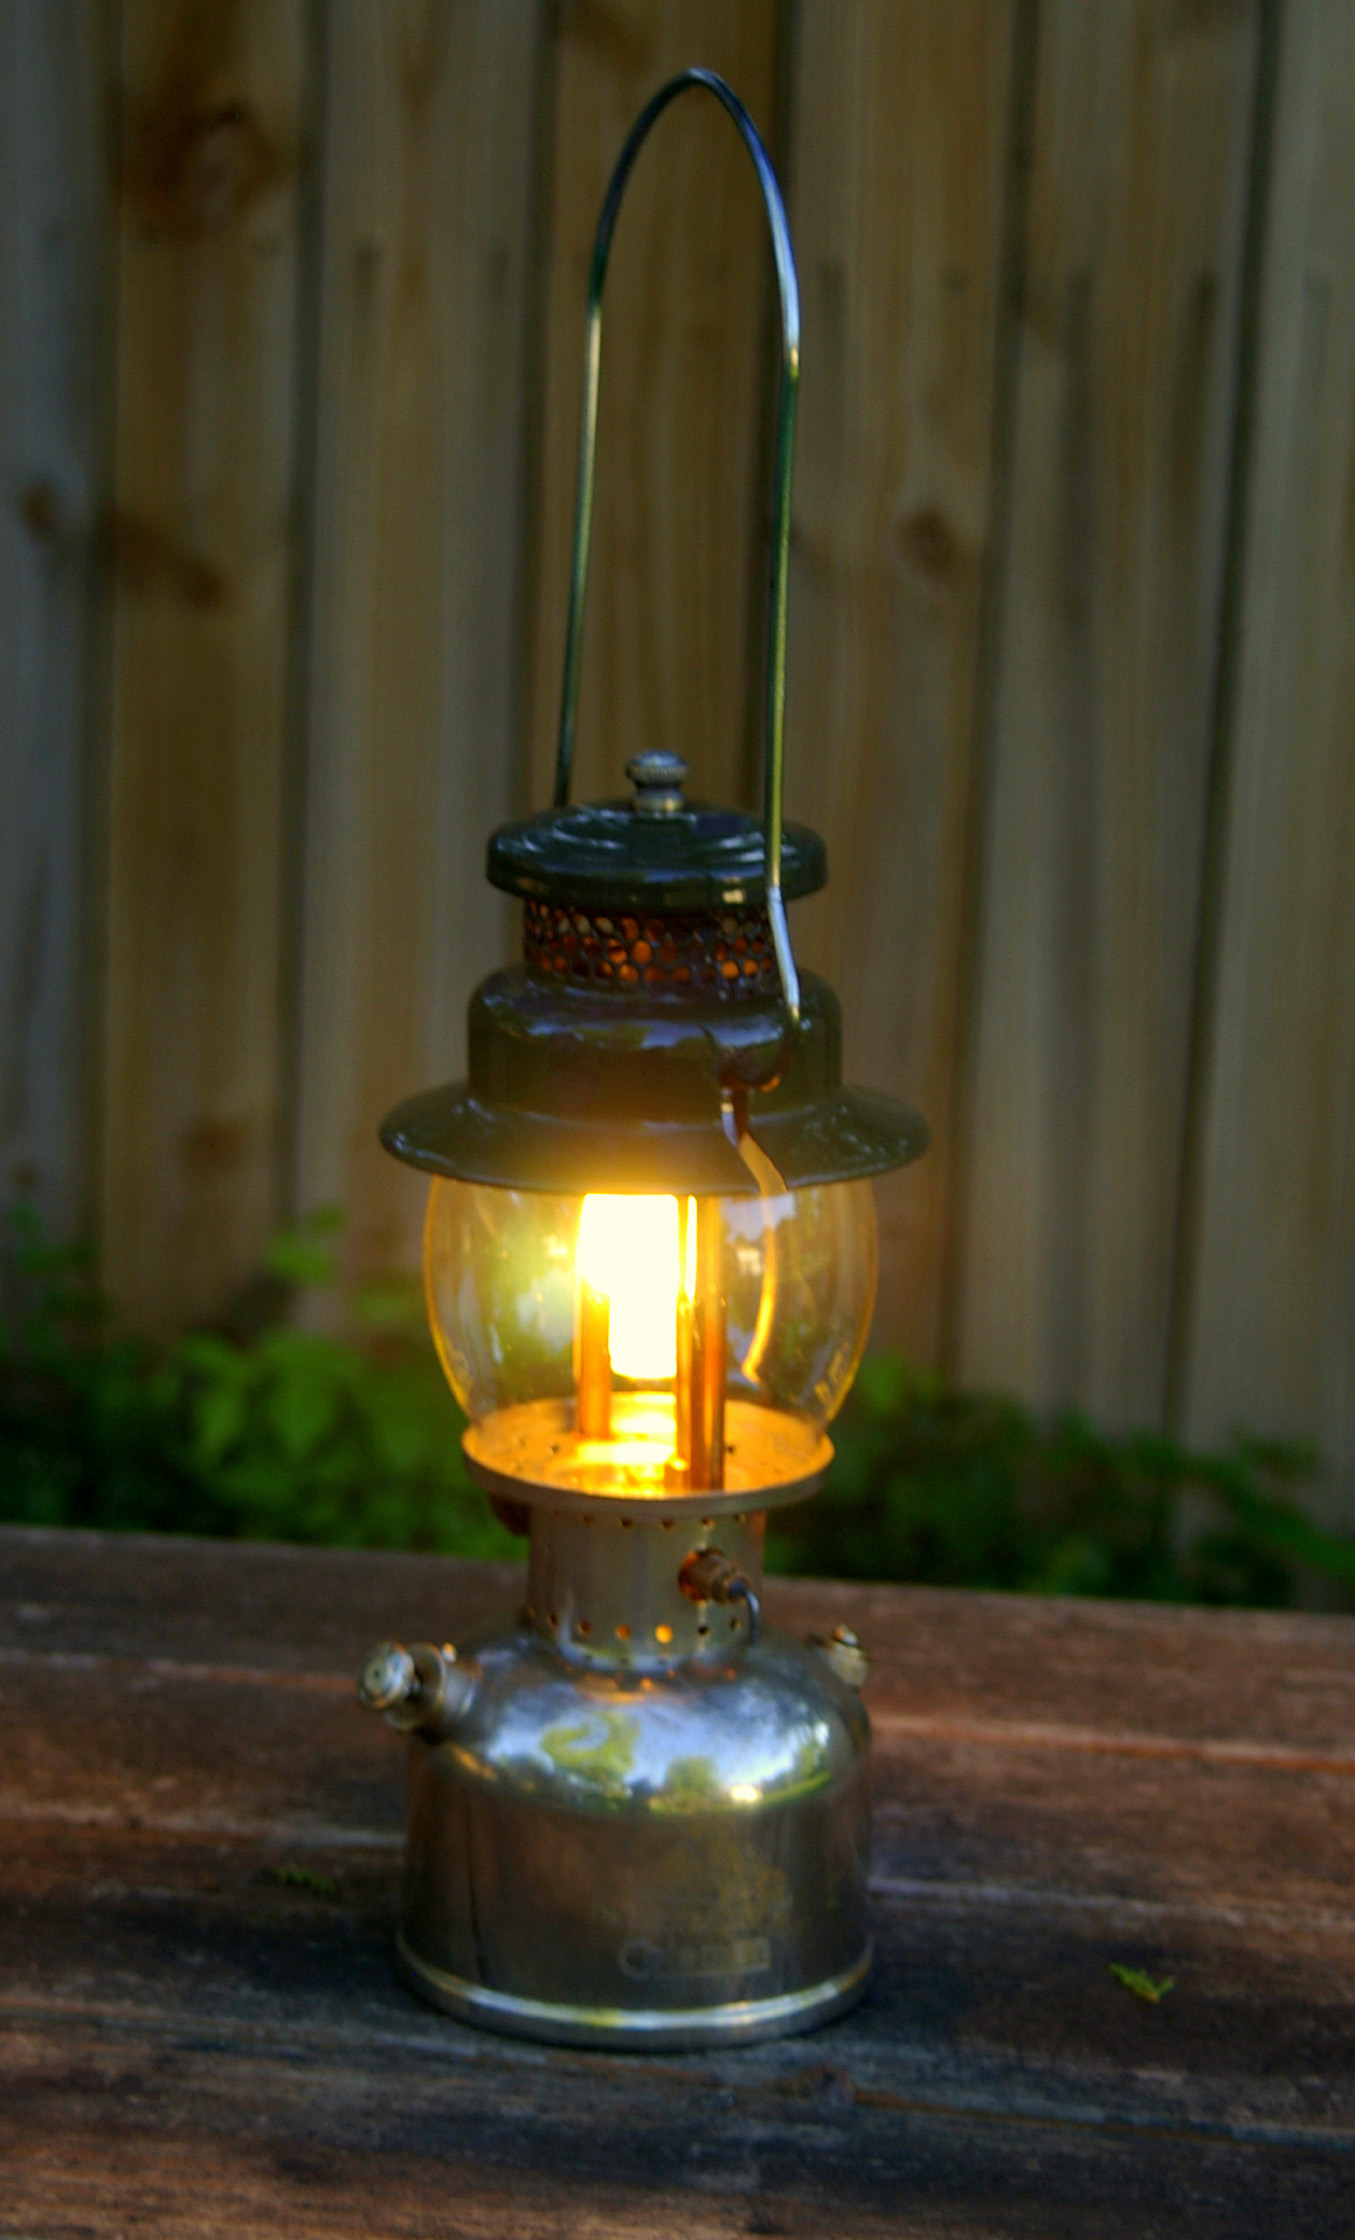 Coleman 242c Pressure Lantern Made in 1948   THE WOODS LIFE